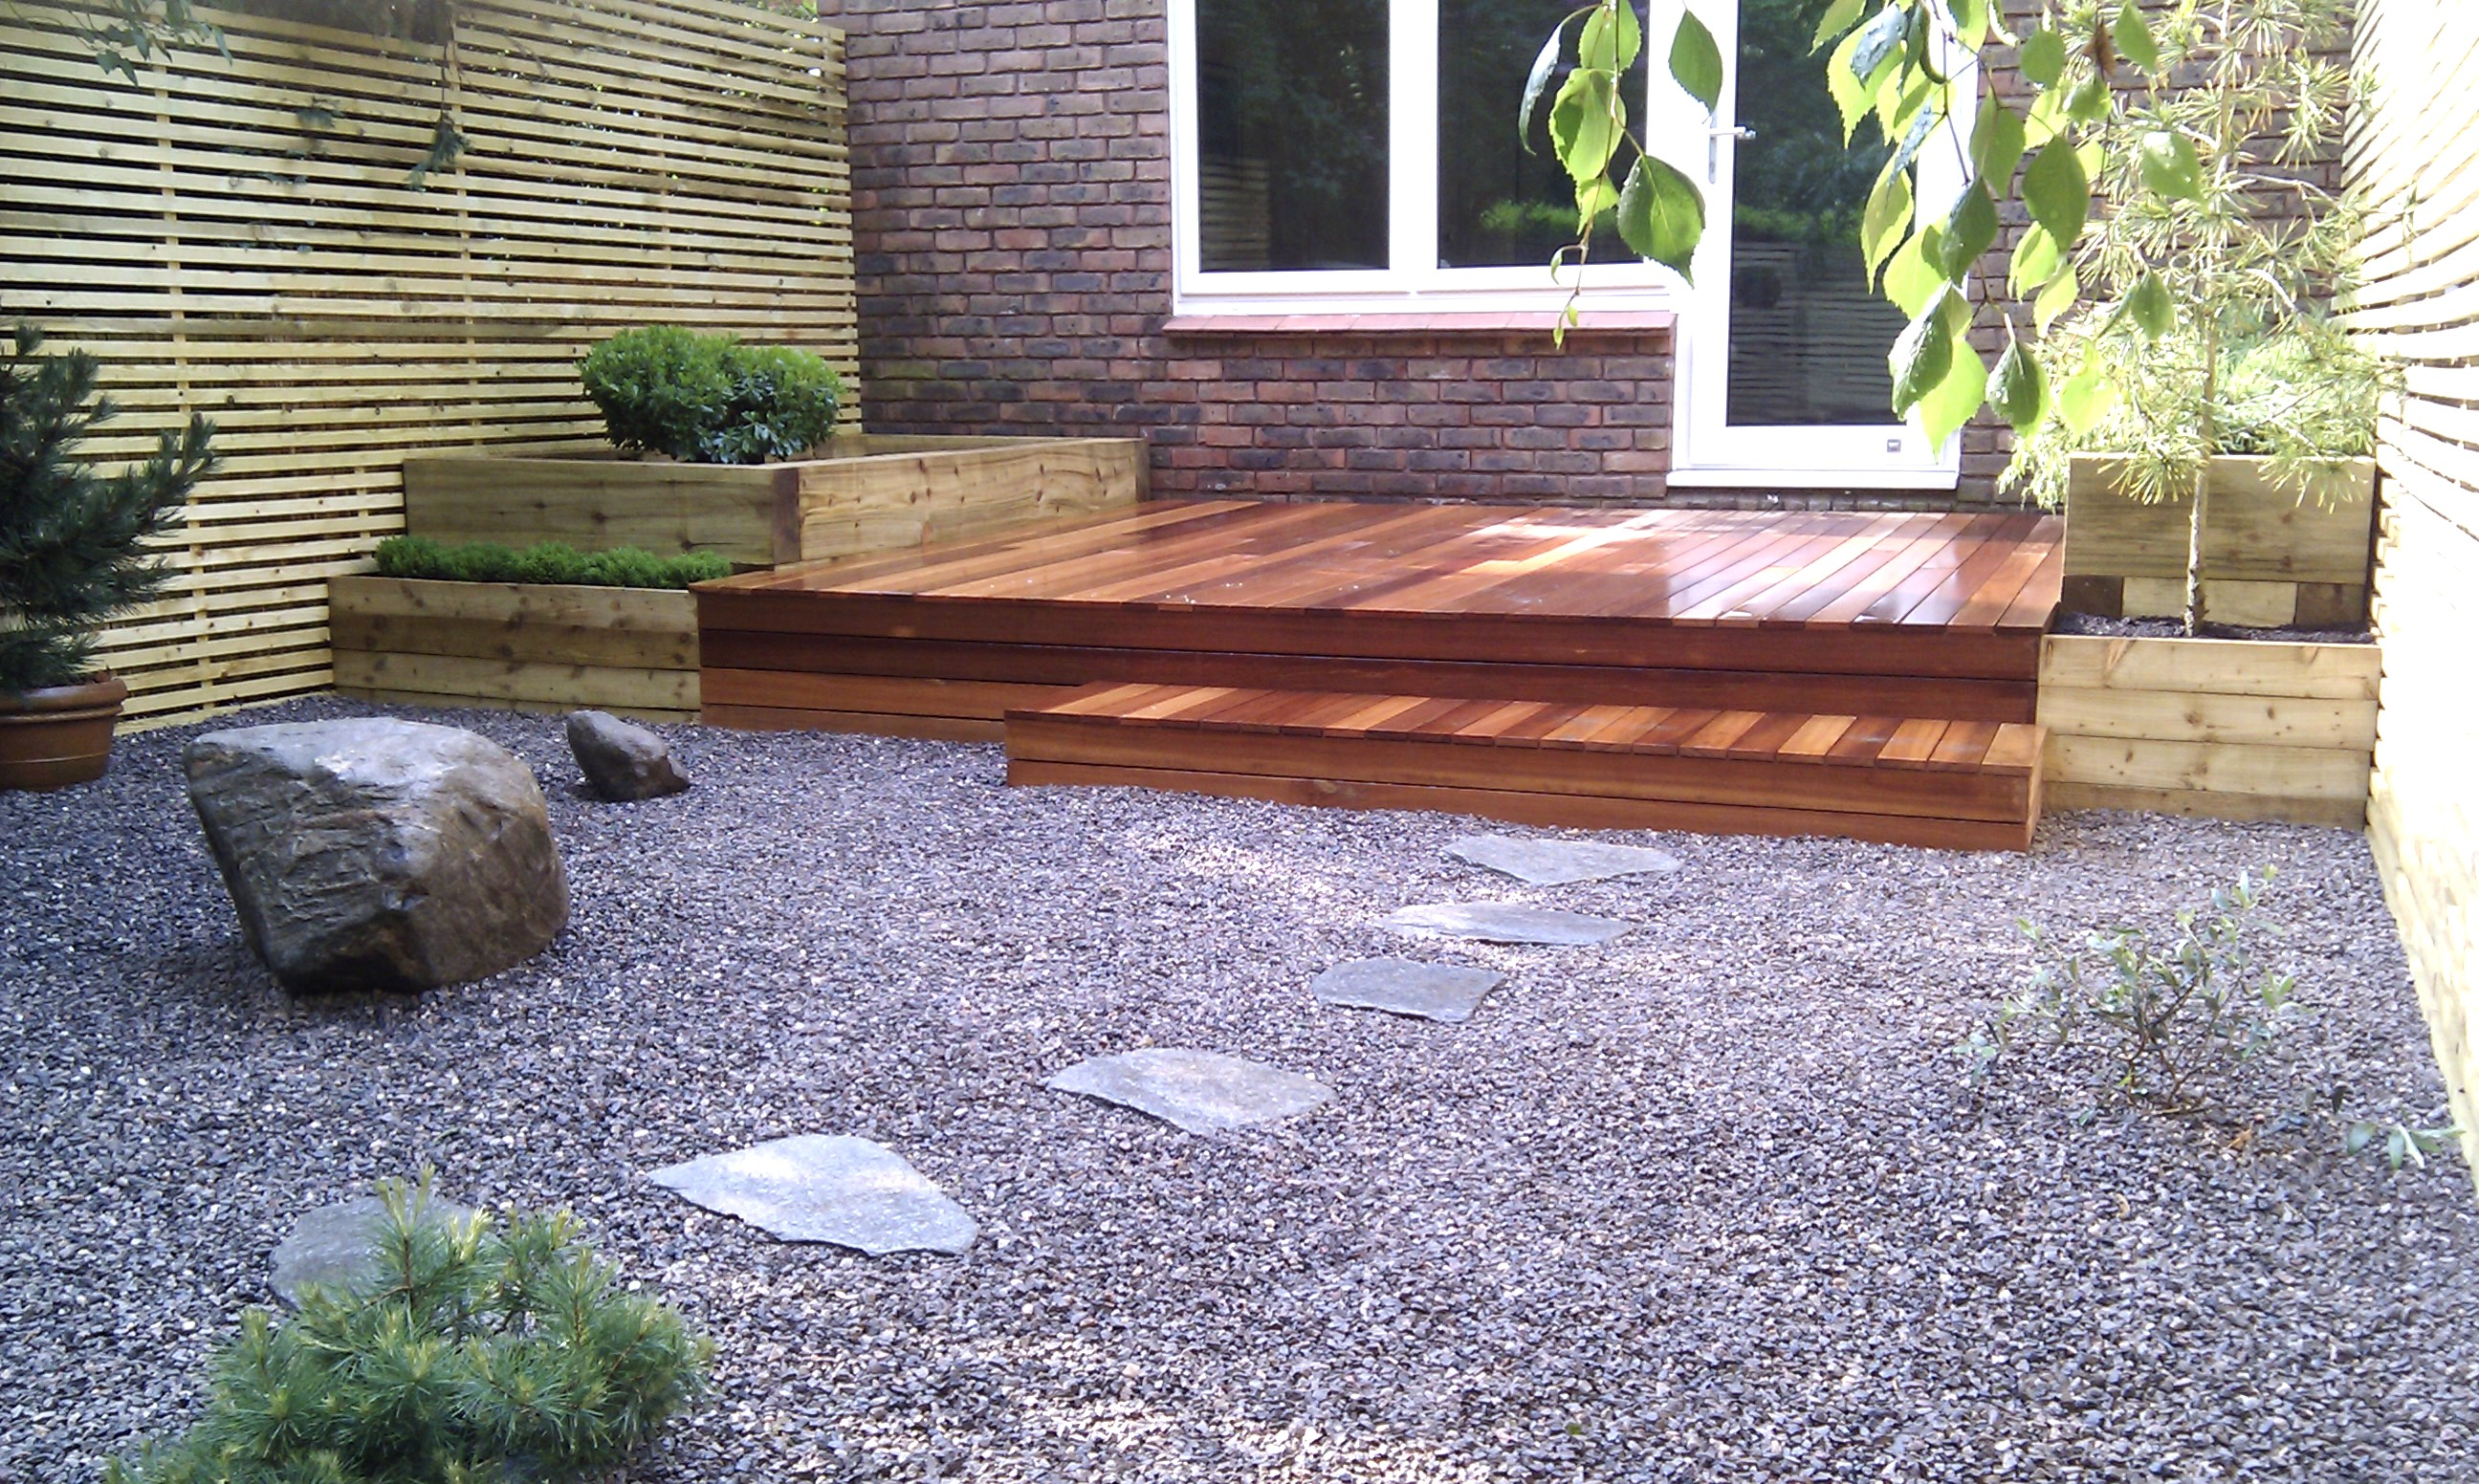 hardwood decking minimalist limestone chippings privacy screen south east london (38)